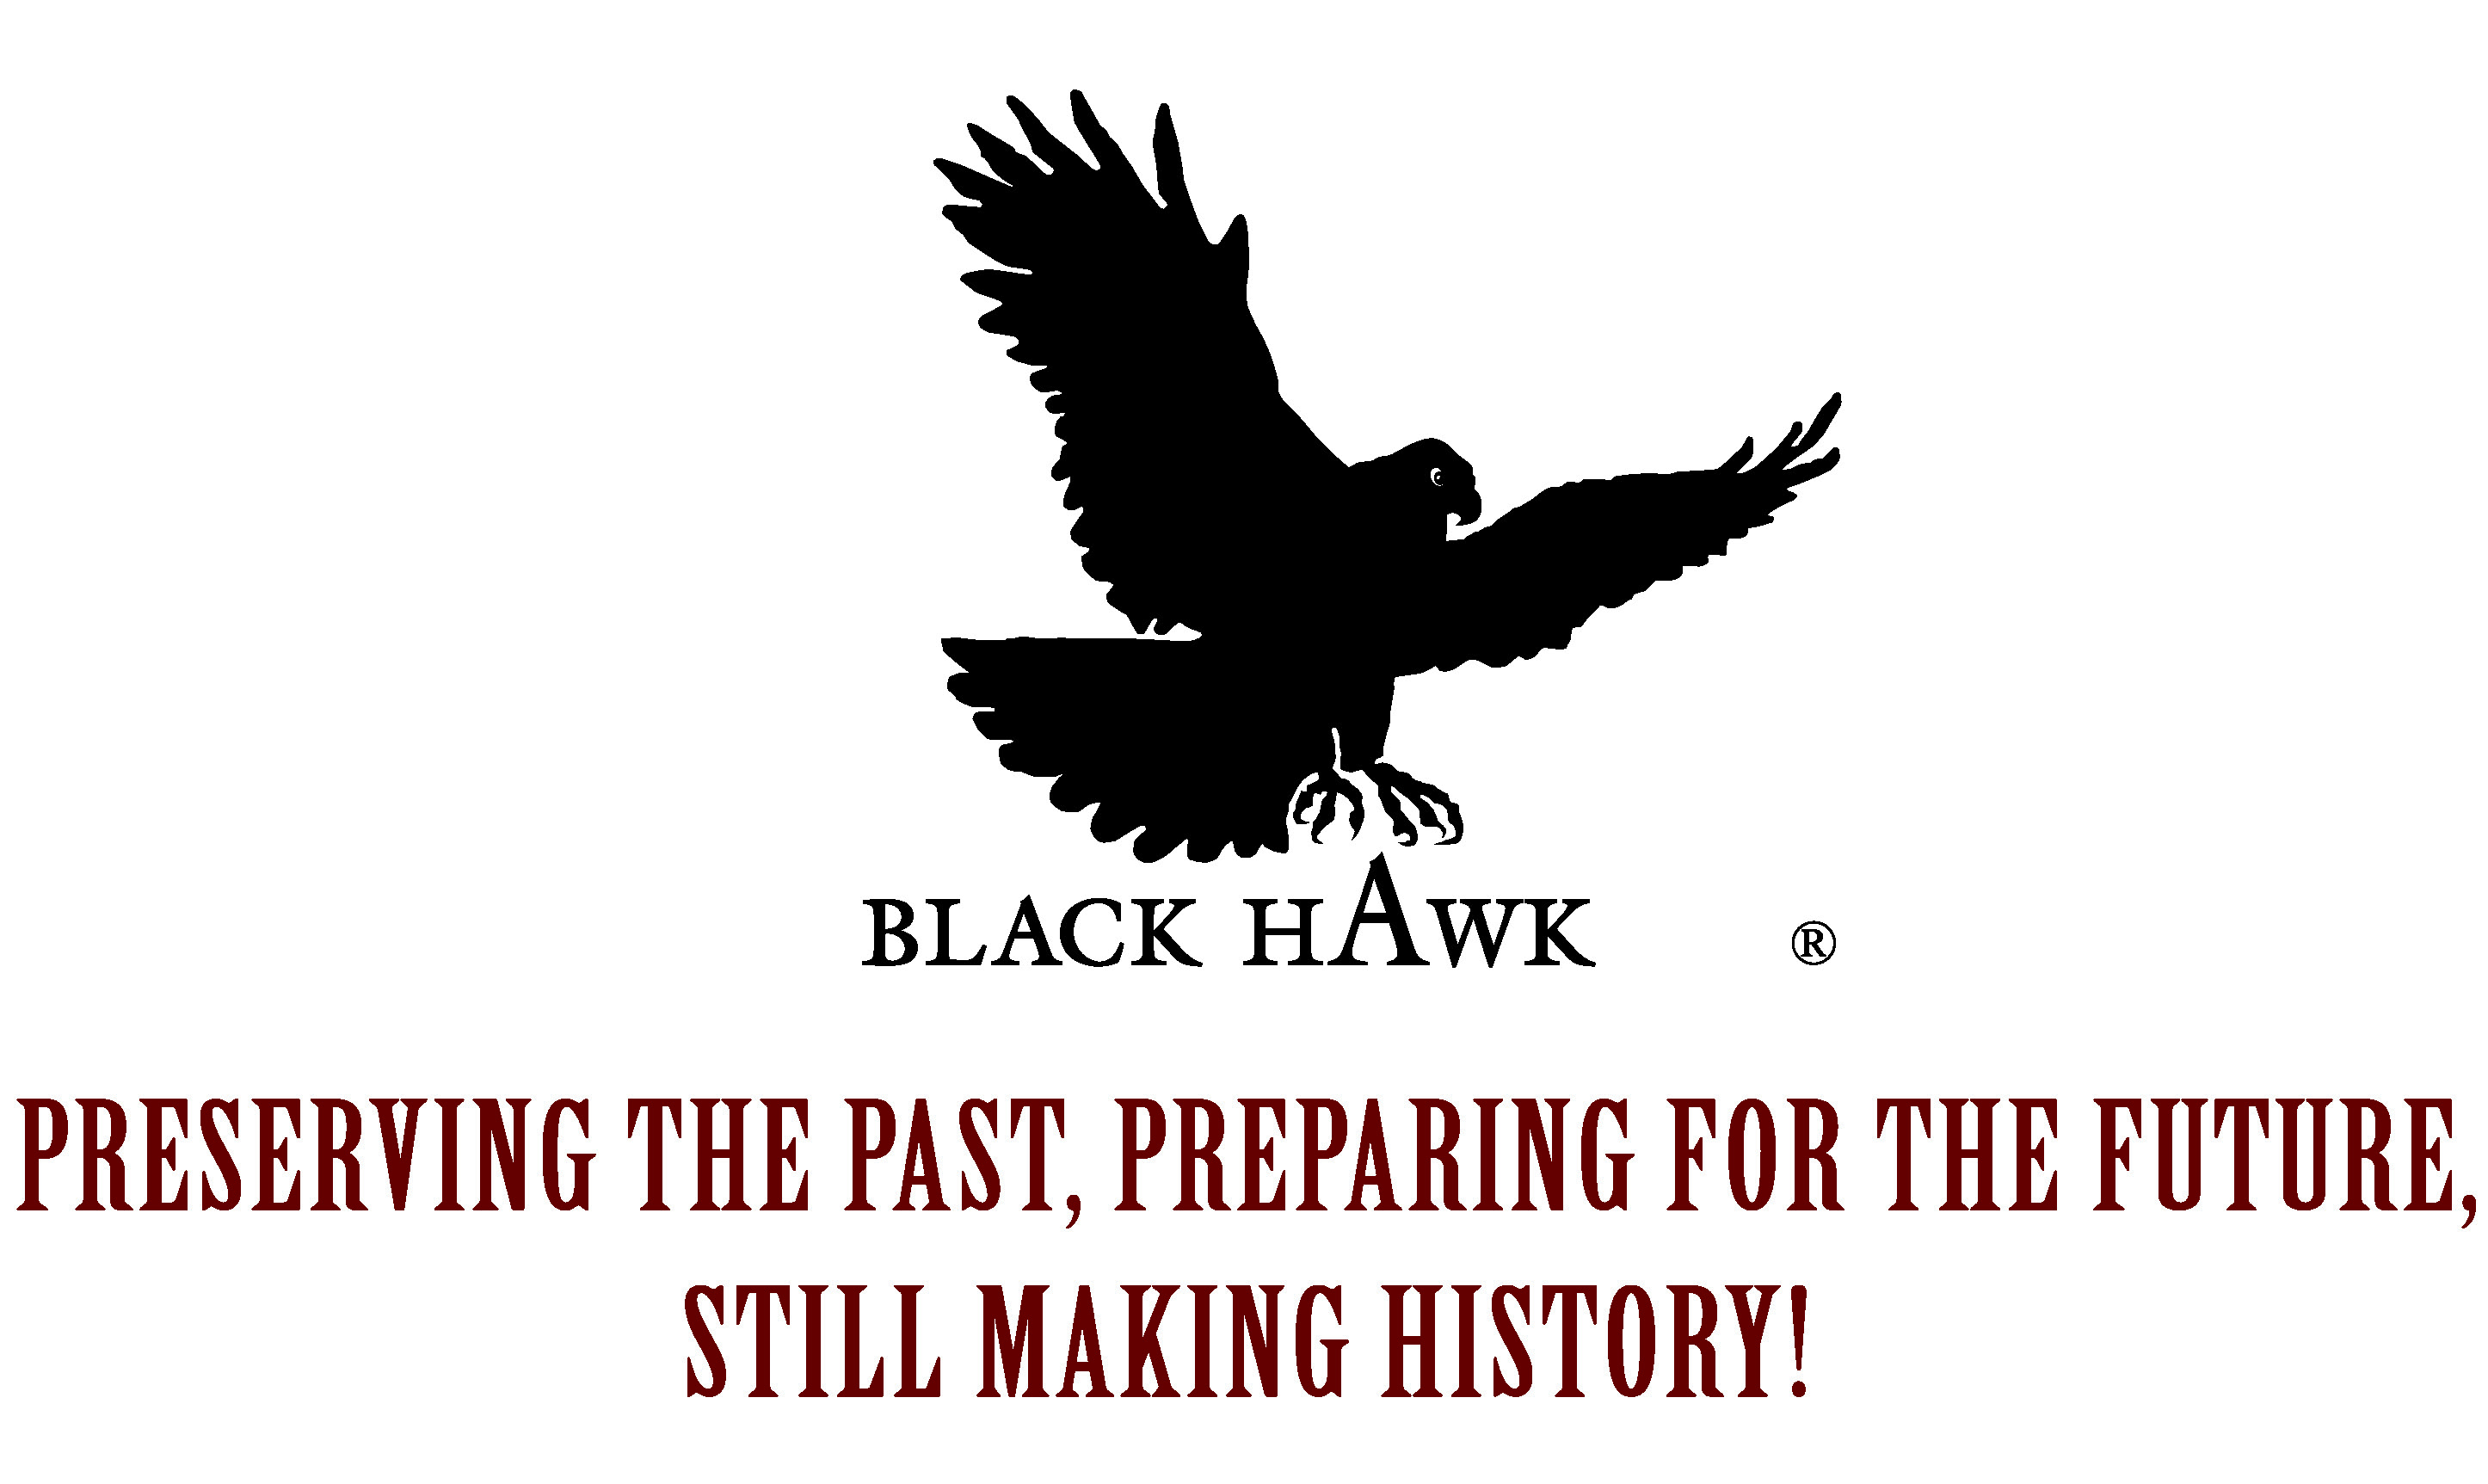 City of Black Hawk Logo-3PtTag OL 2014-10-17